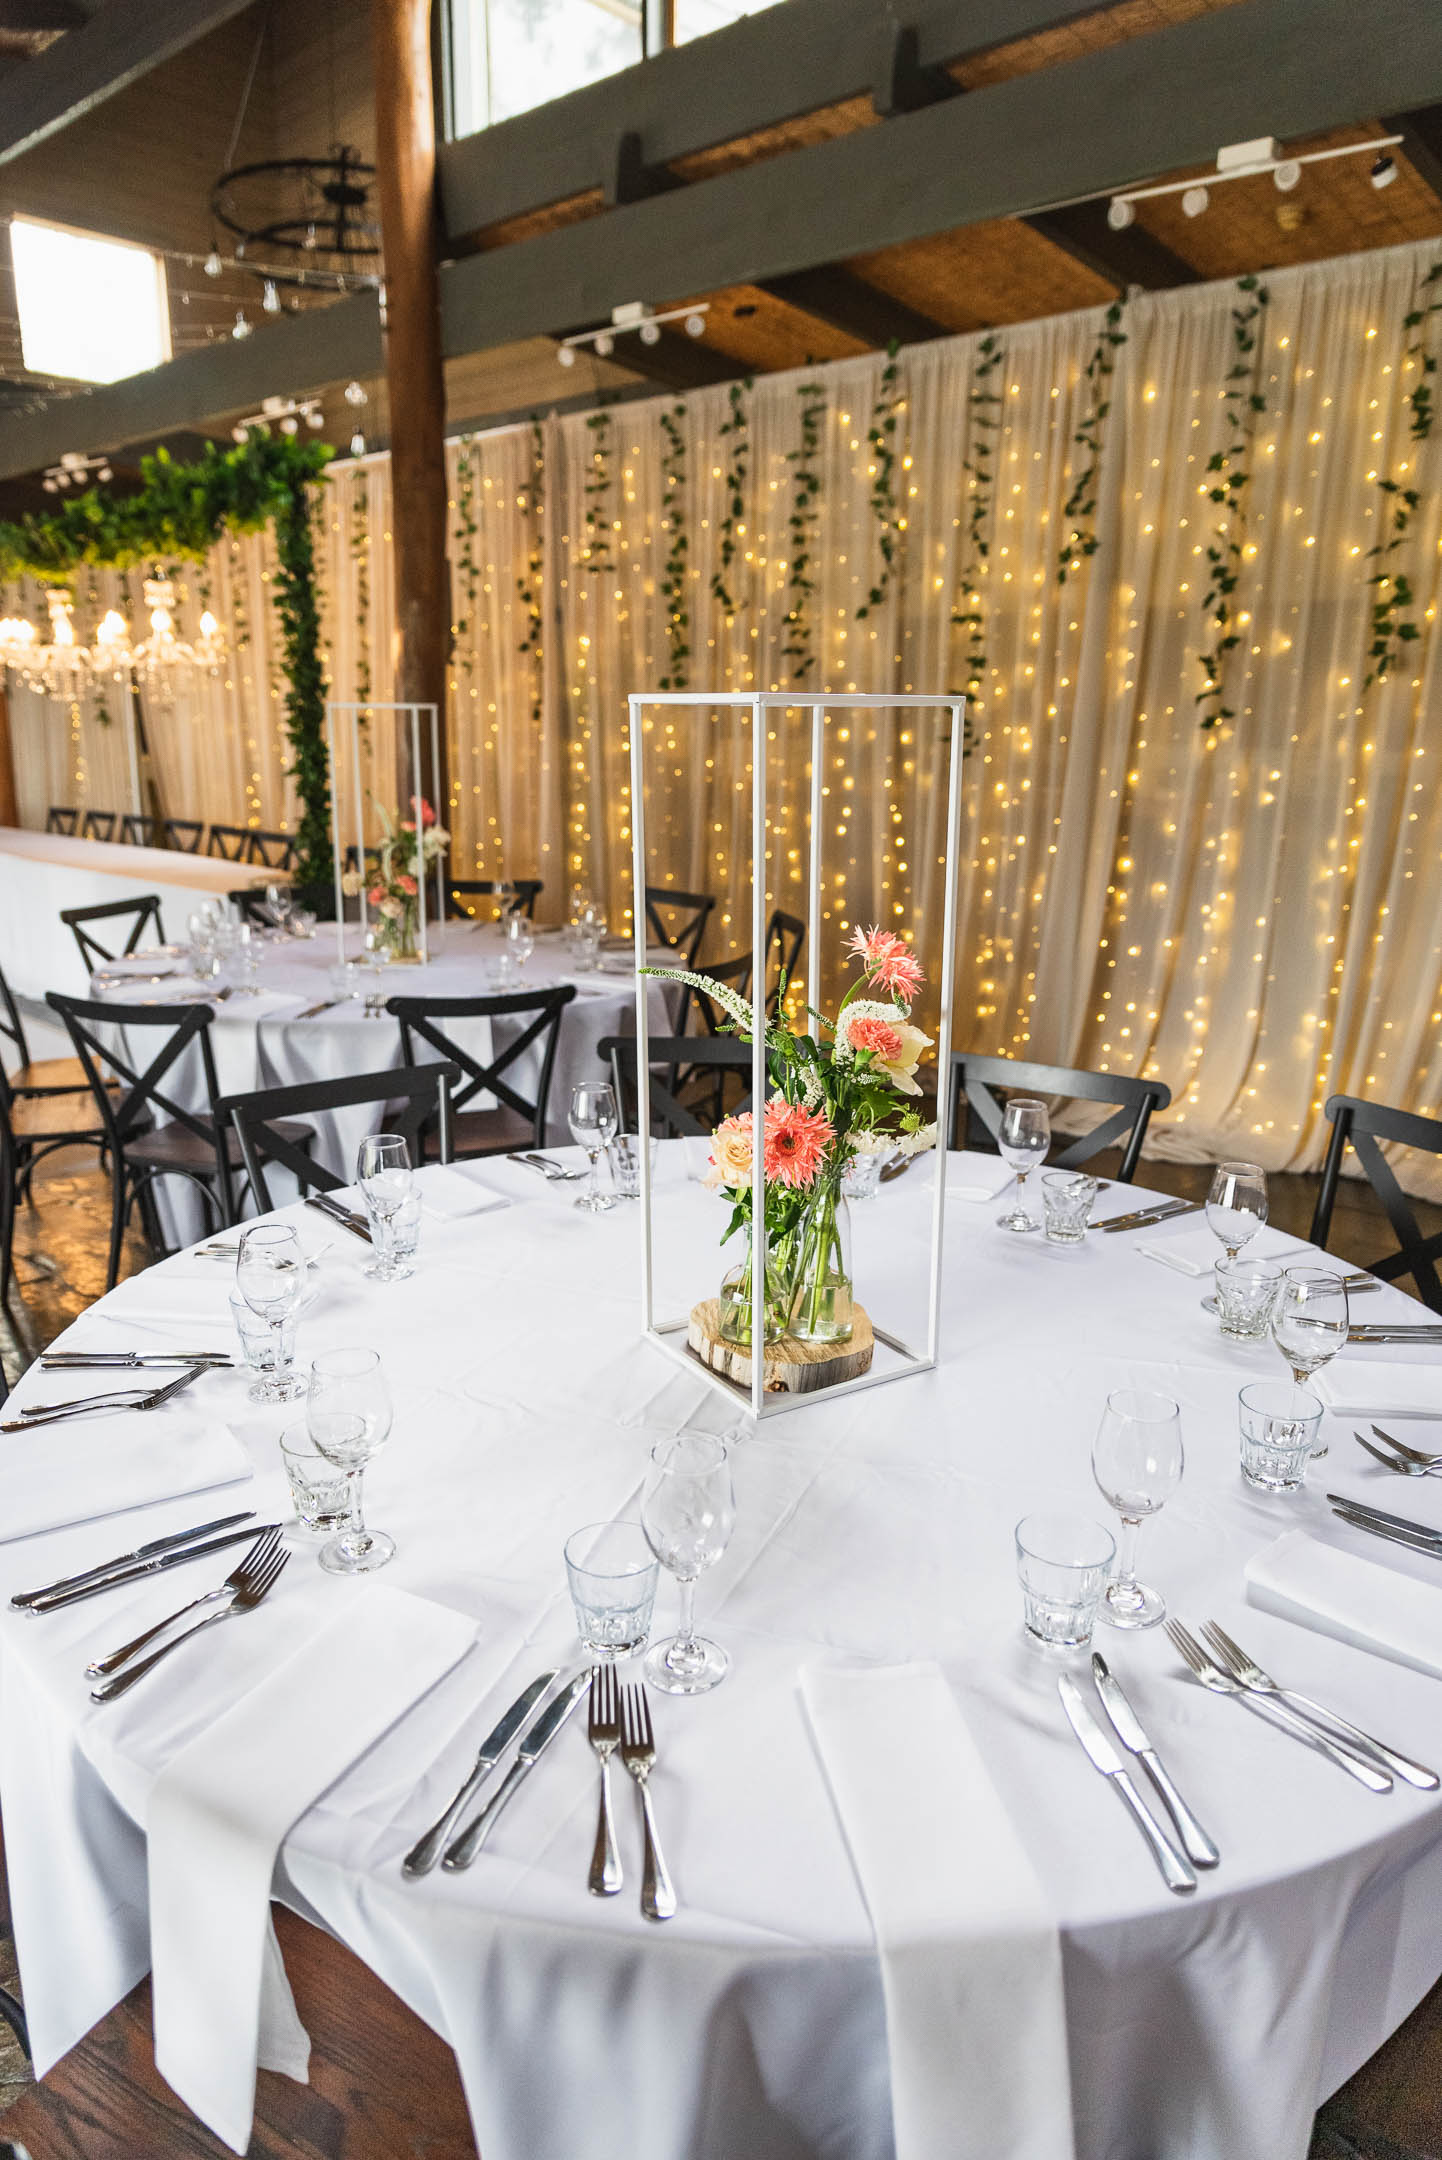 Fergusson winery wedding with round tables